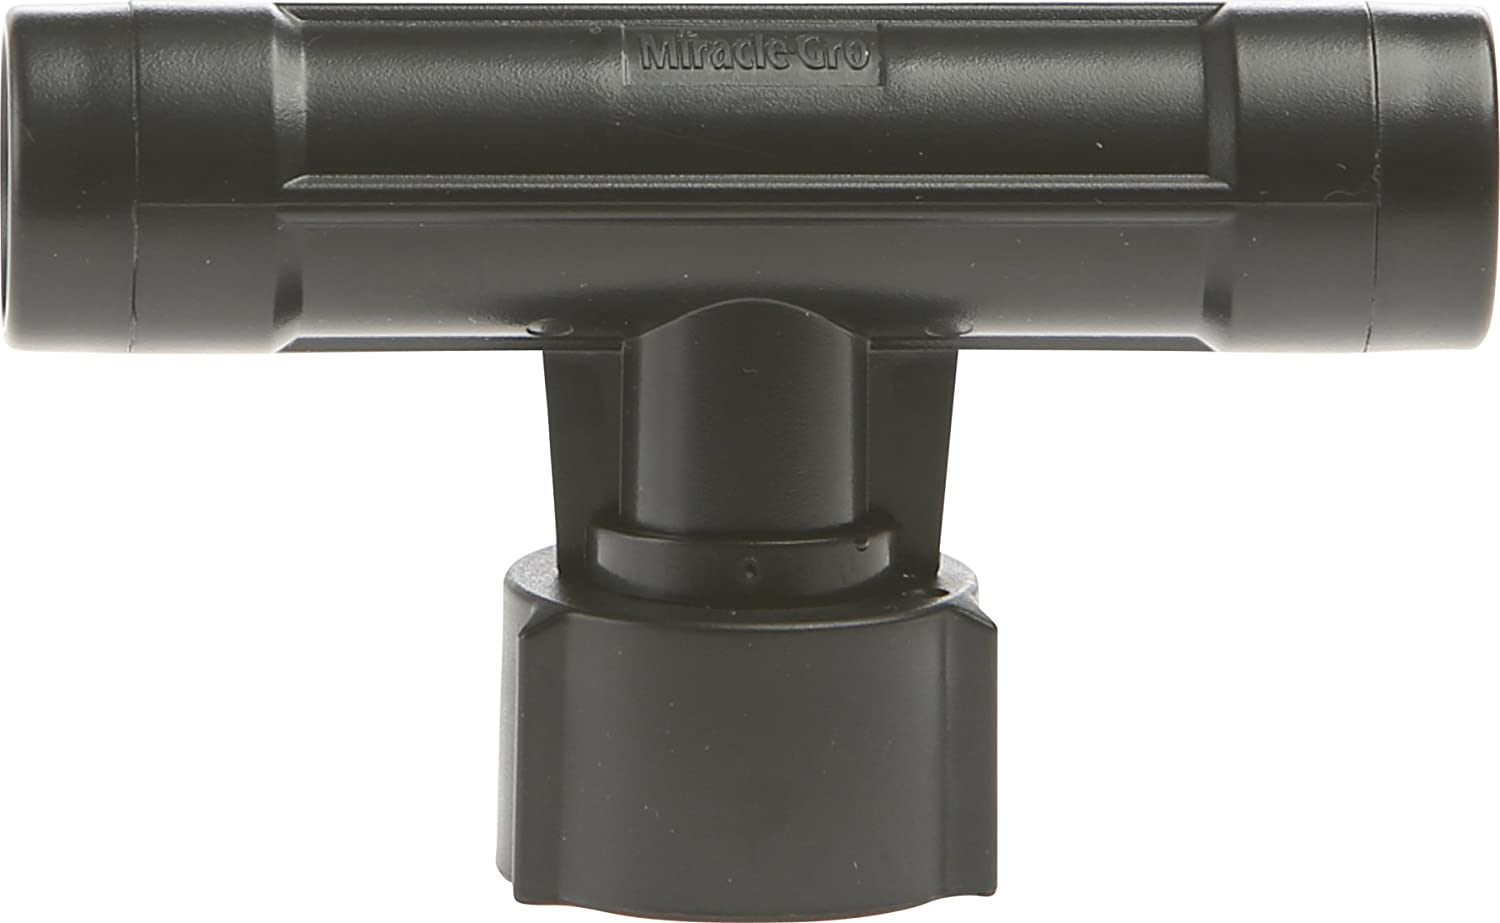 Swan Products MGEZFE3801 Miracle-Gro Soaker System Push on Fitting Replacement Piece: Feeder Connector, Black